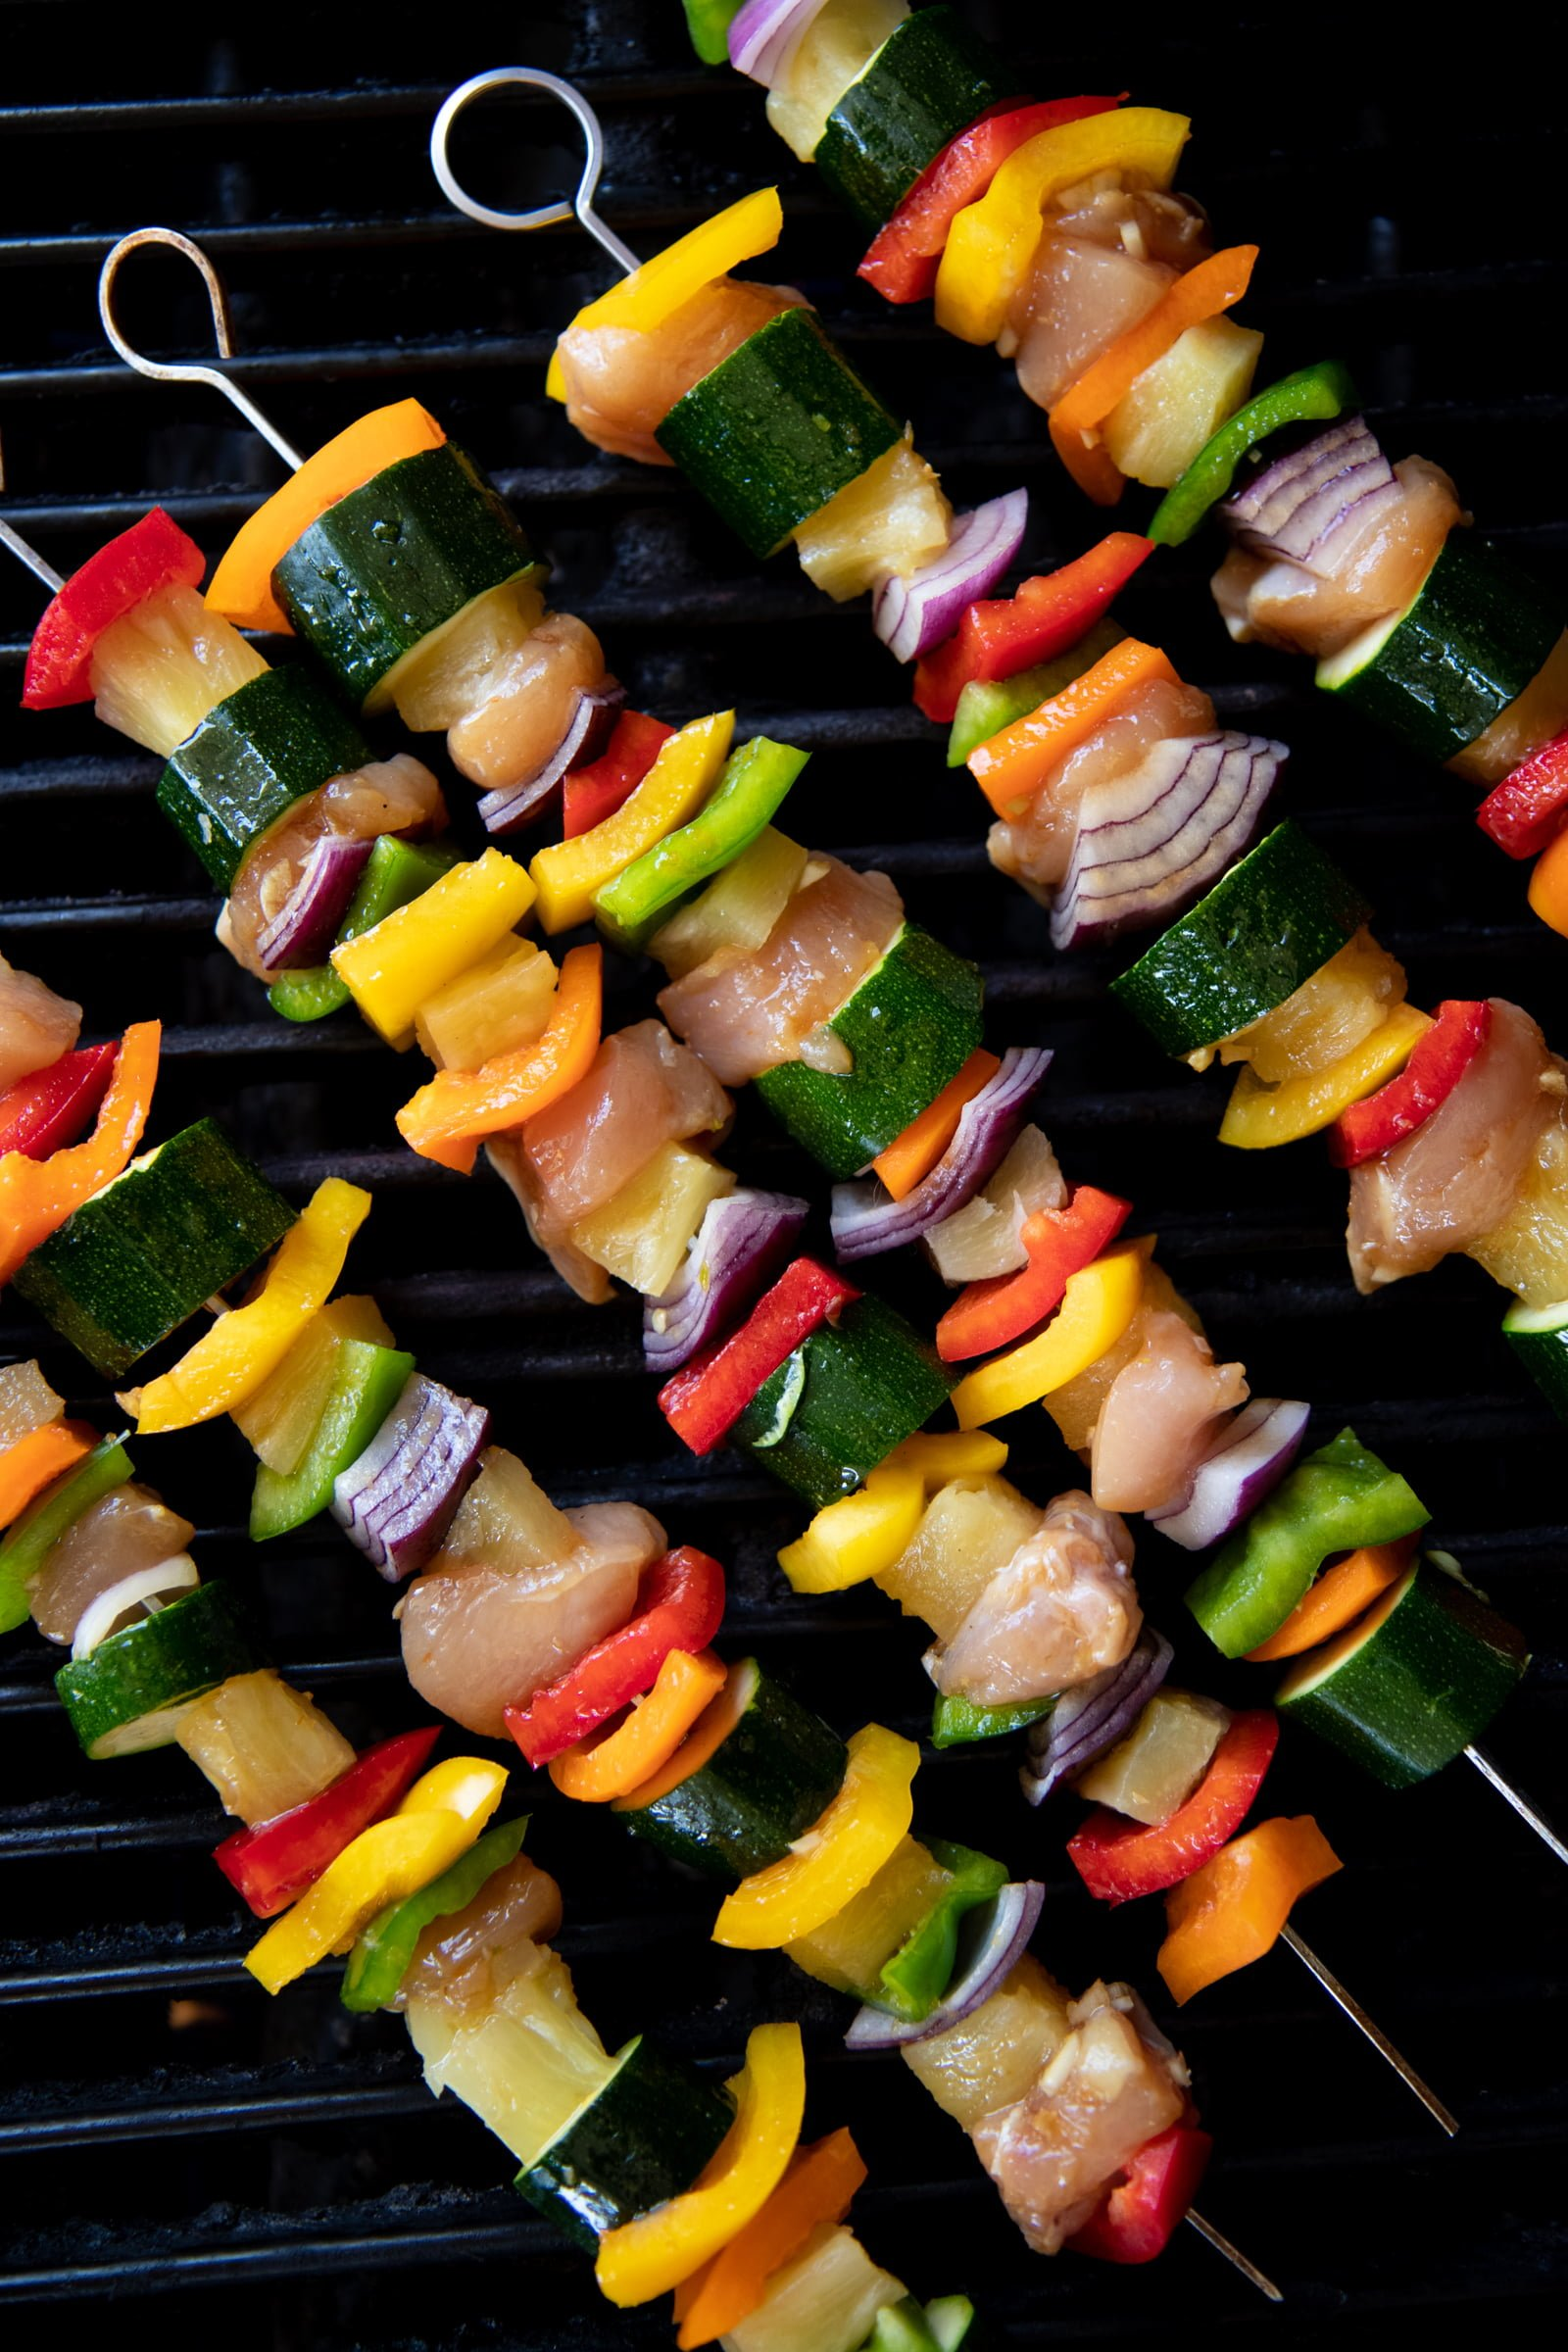 Metal skewers threaded with chicken, vegetables, and pineapple on top of a grill.